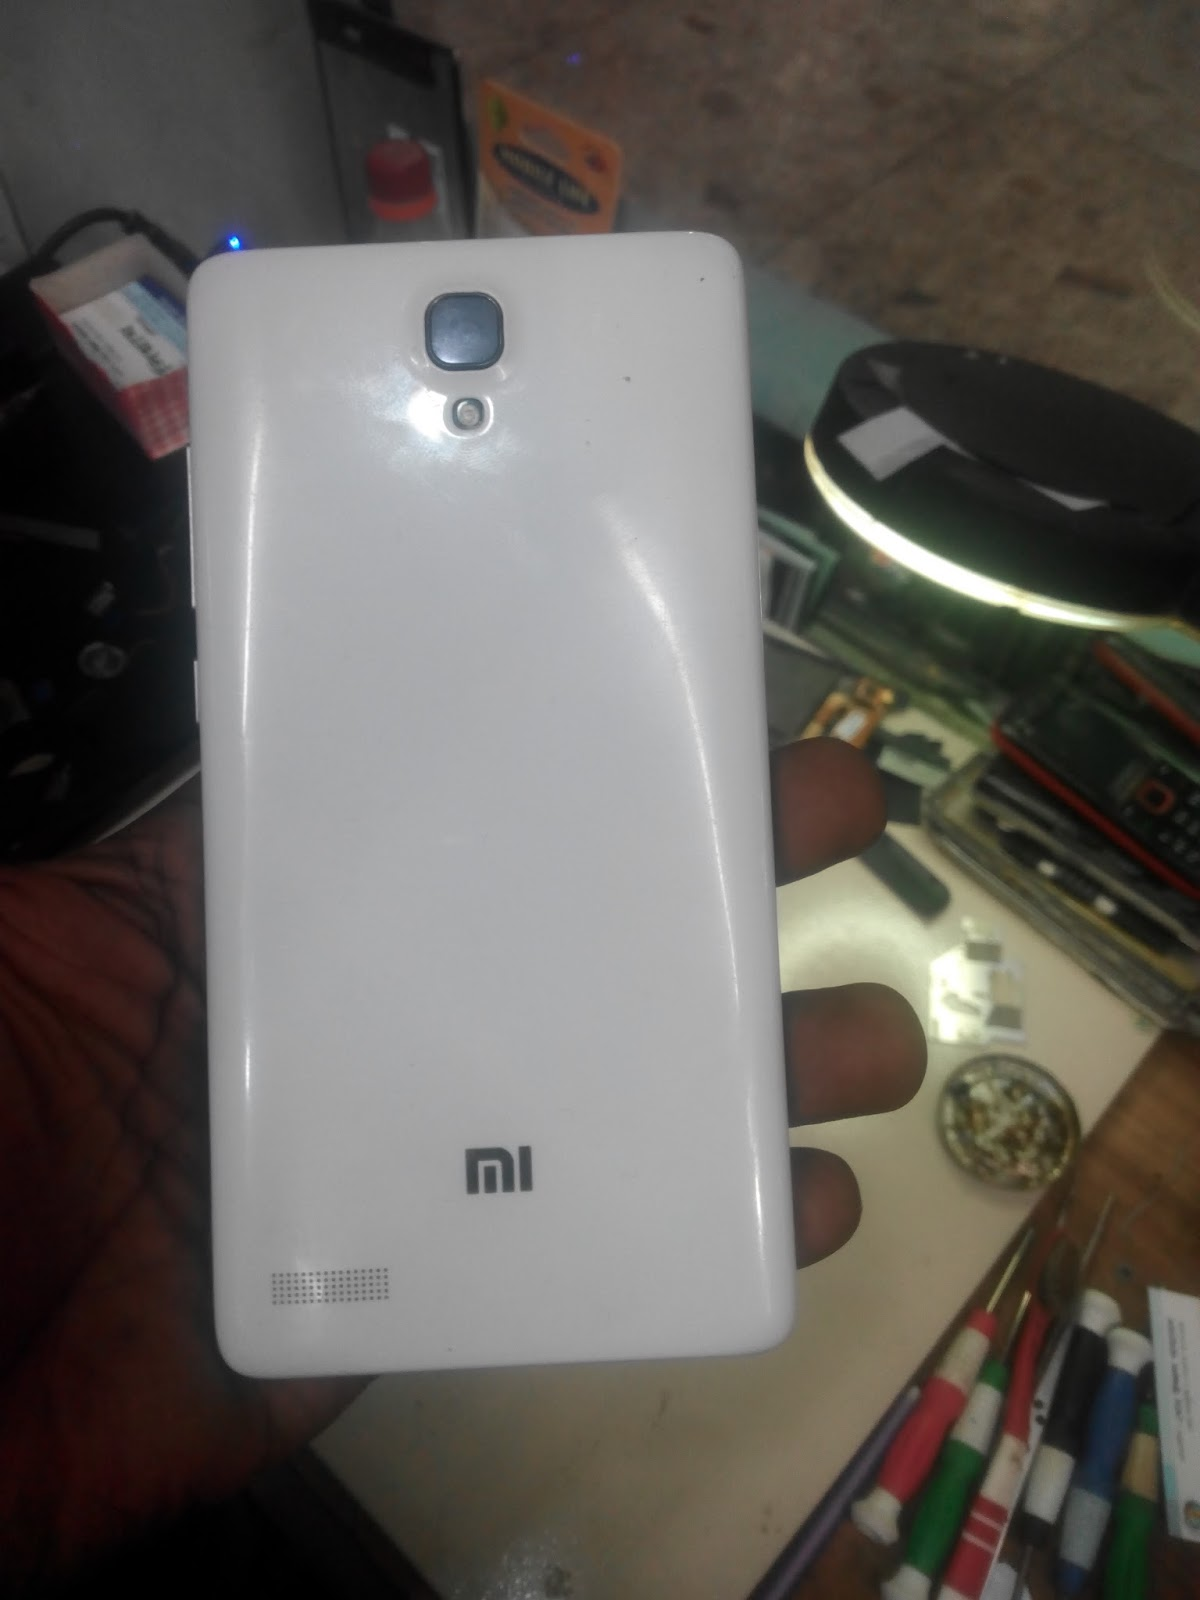 mi 2013121 firmware 1000000% tested by gsm_ramim | ROBIN TeLeCoM